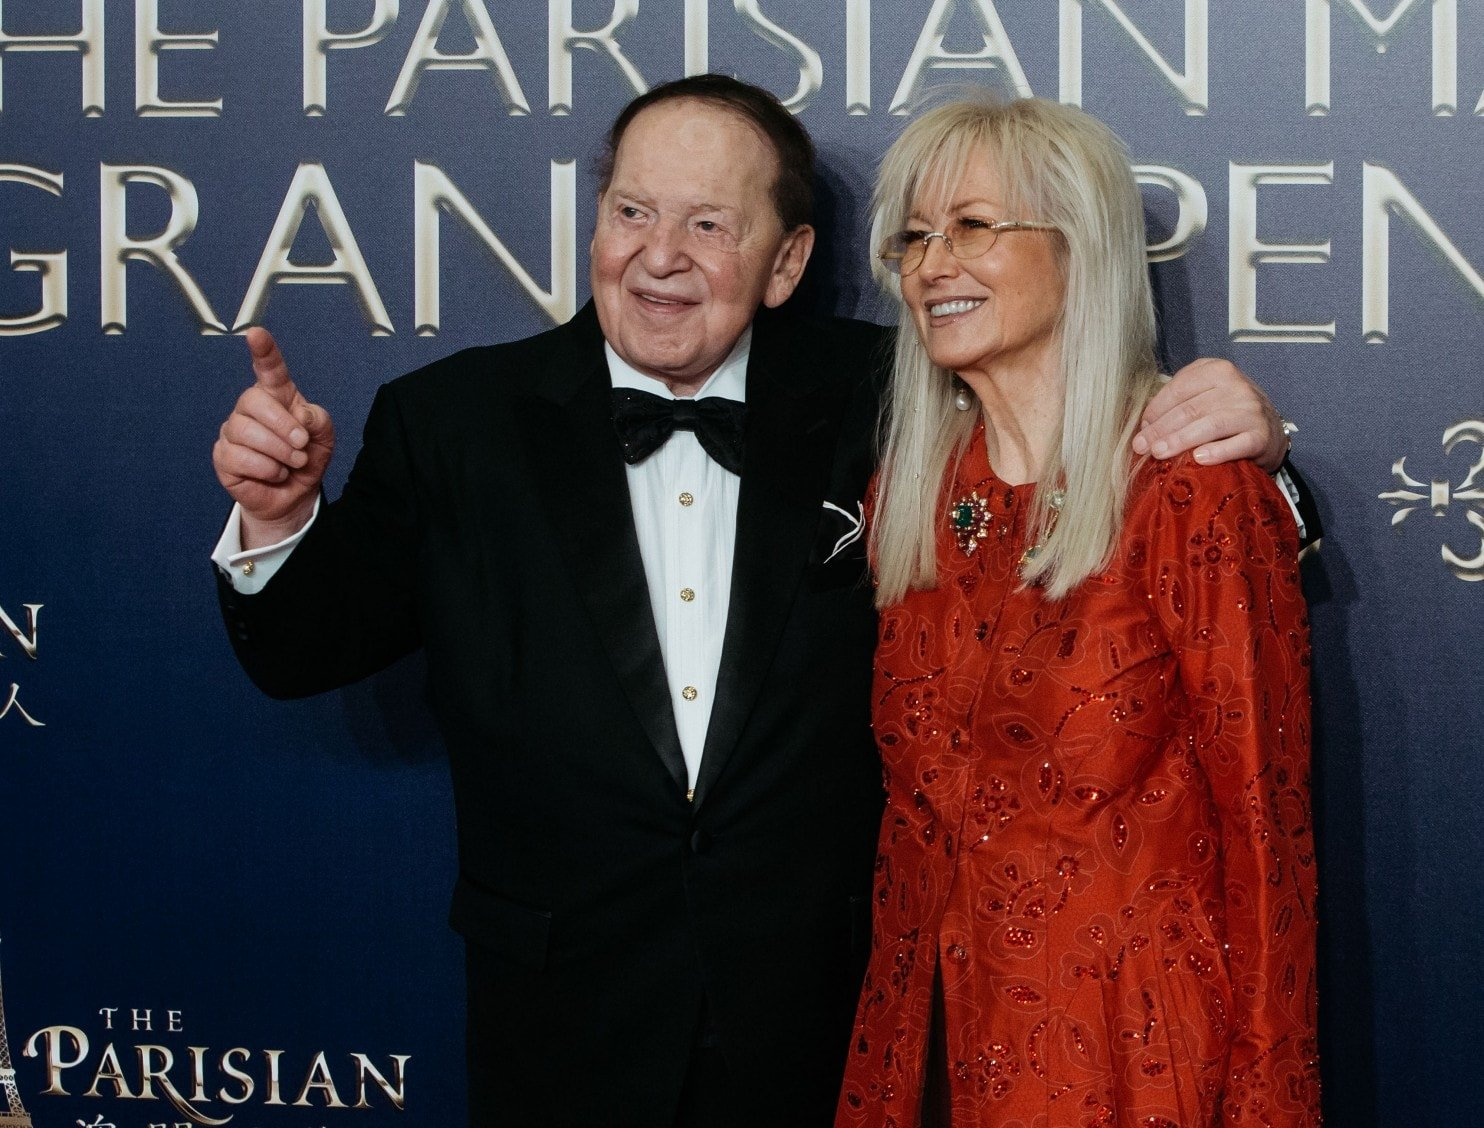 Sheldon Adelson political odds